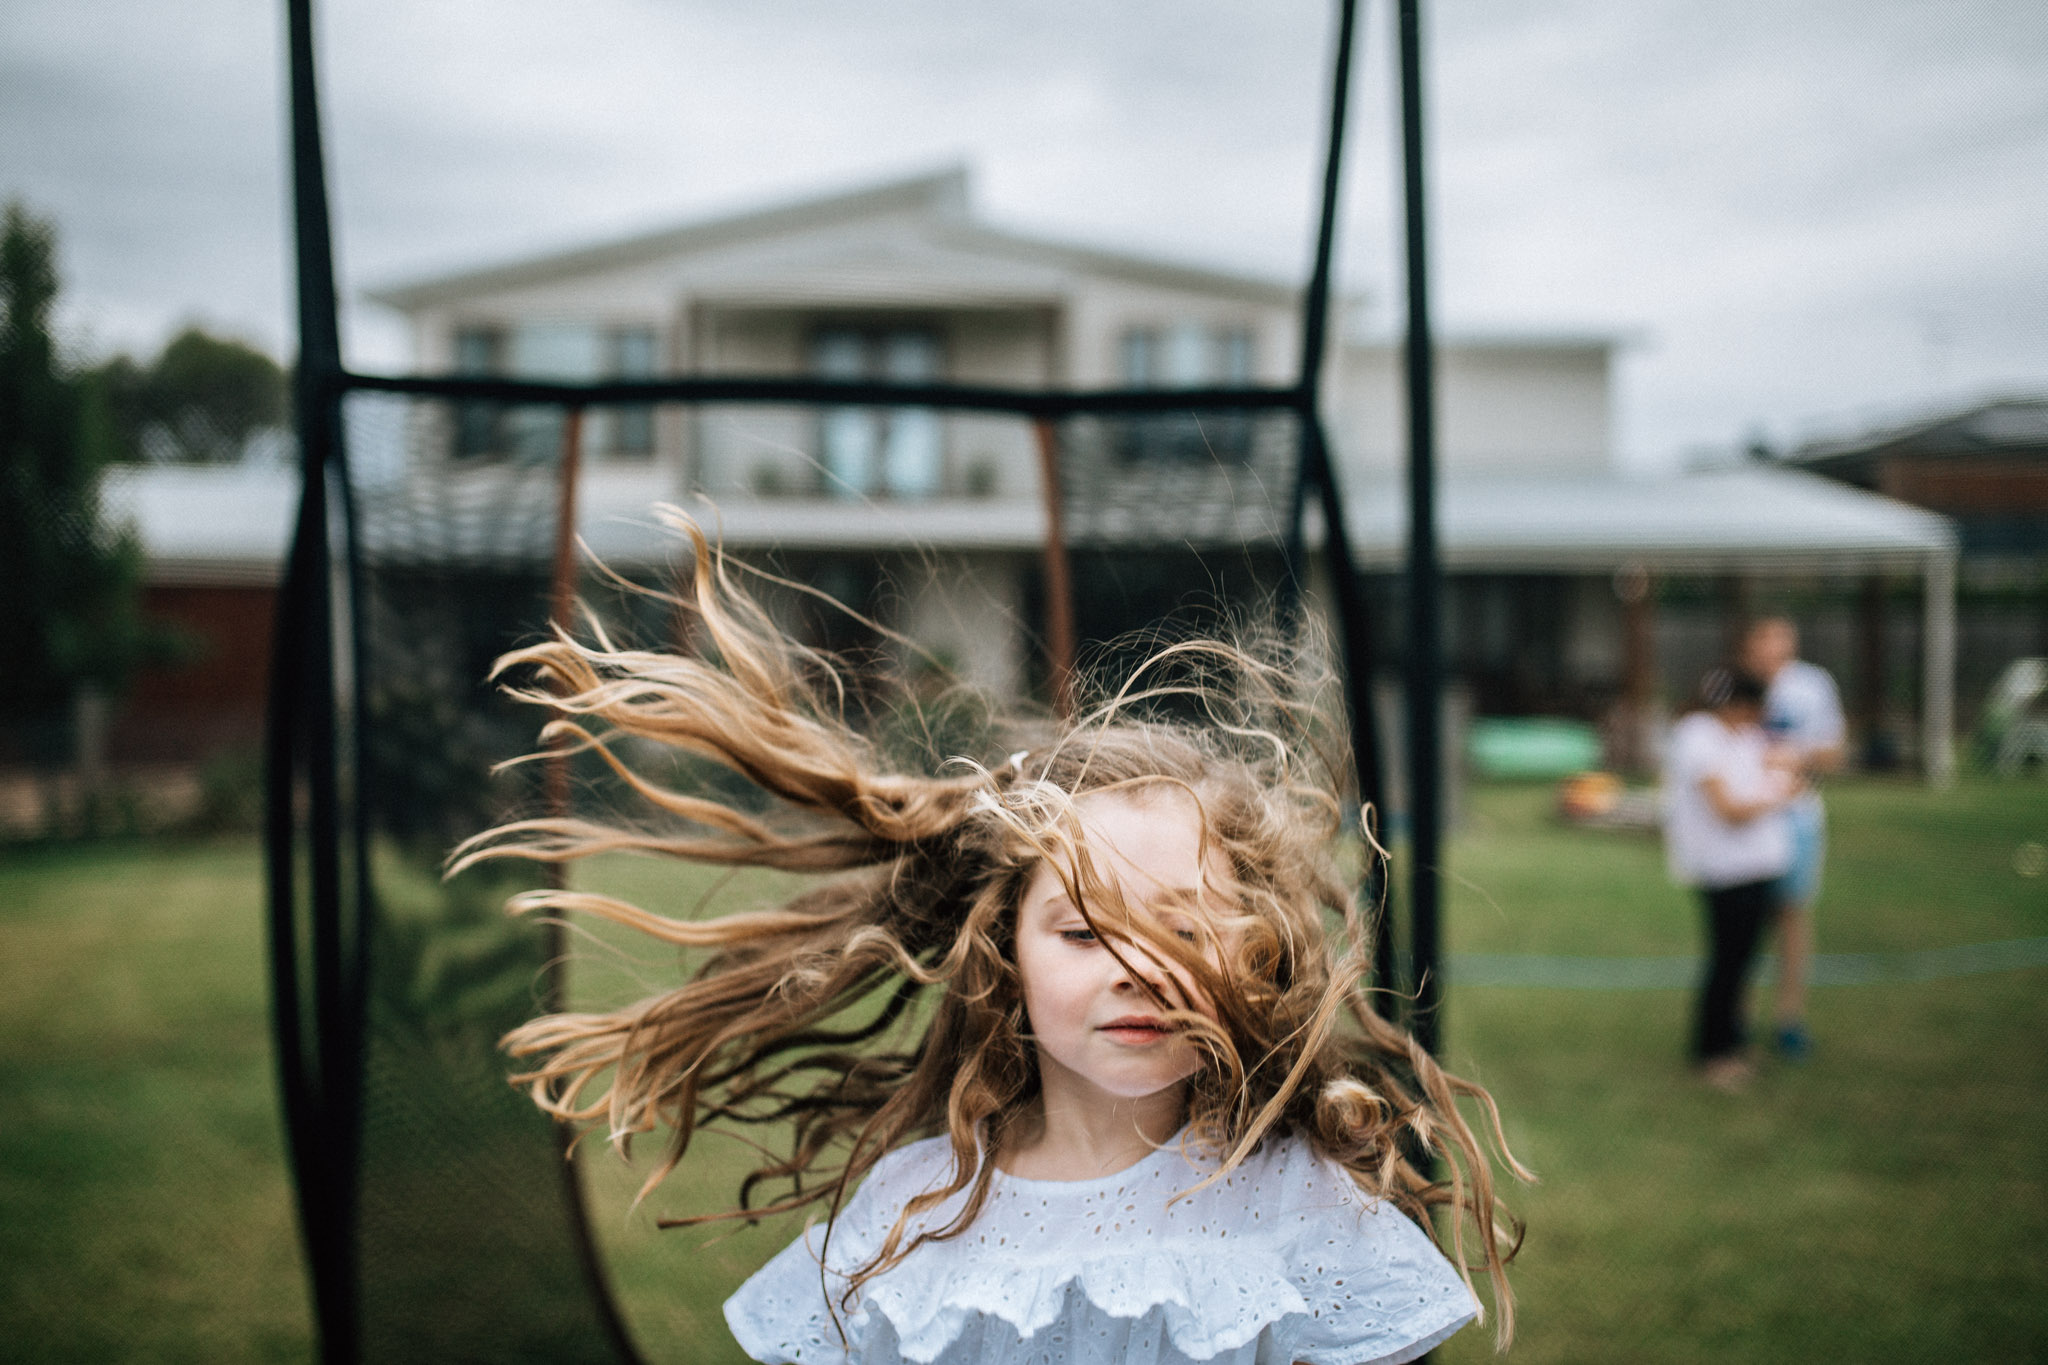 girl-on-trampoline-with-blonde-wavy-hair (1 of 1).jpg